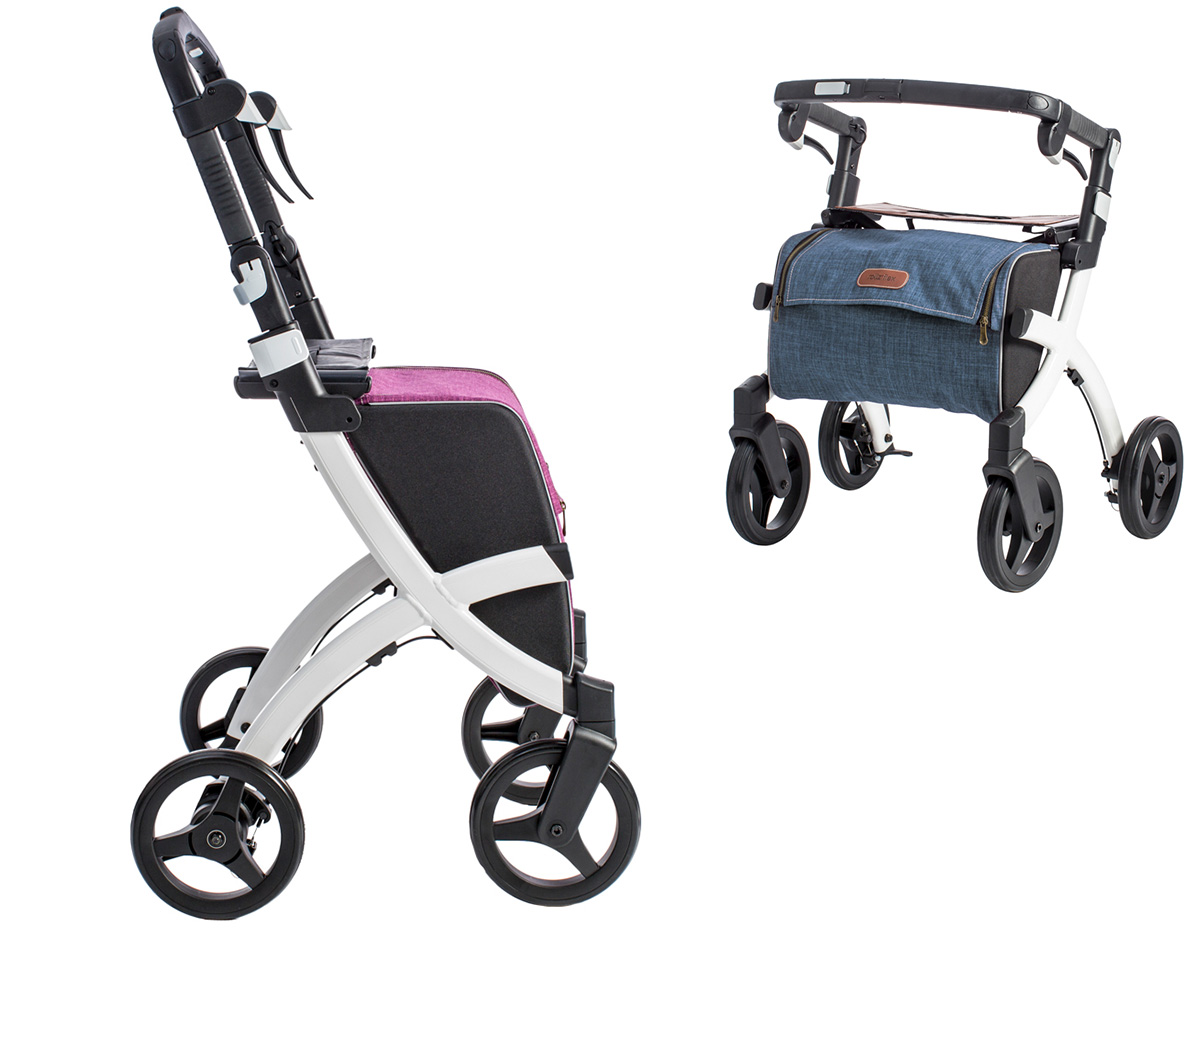 Rollz rollators come in two sizes: regular and small